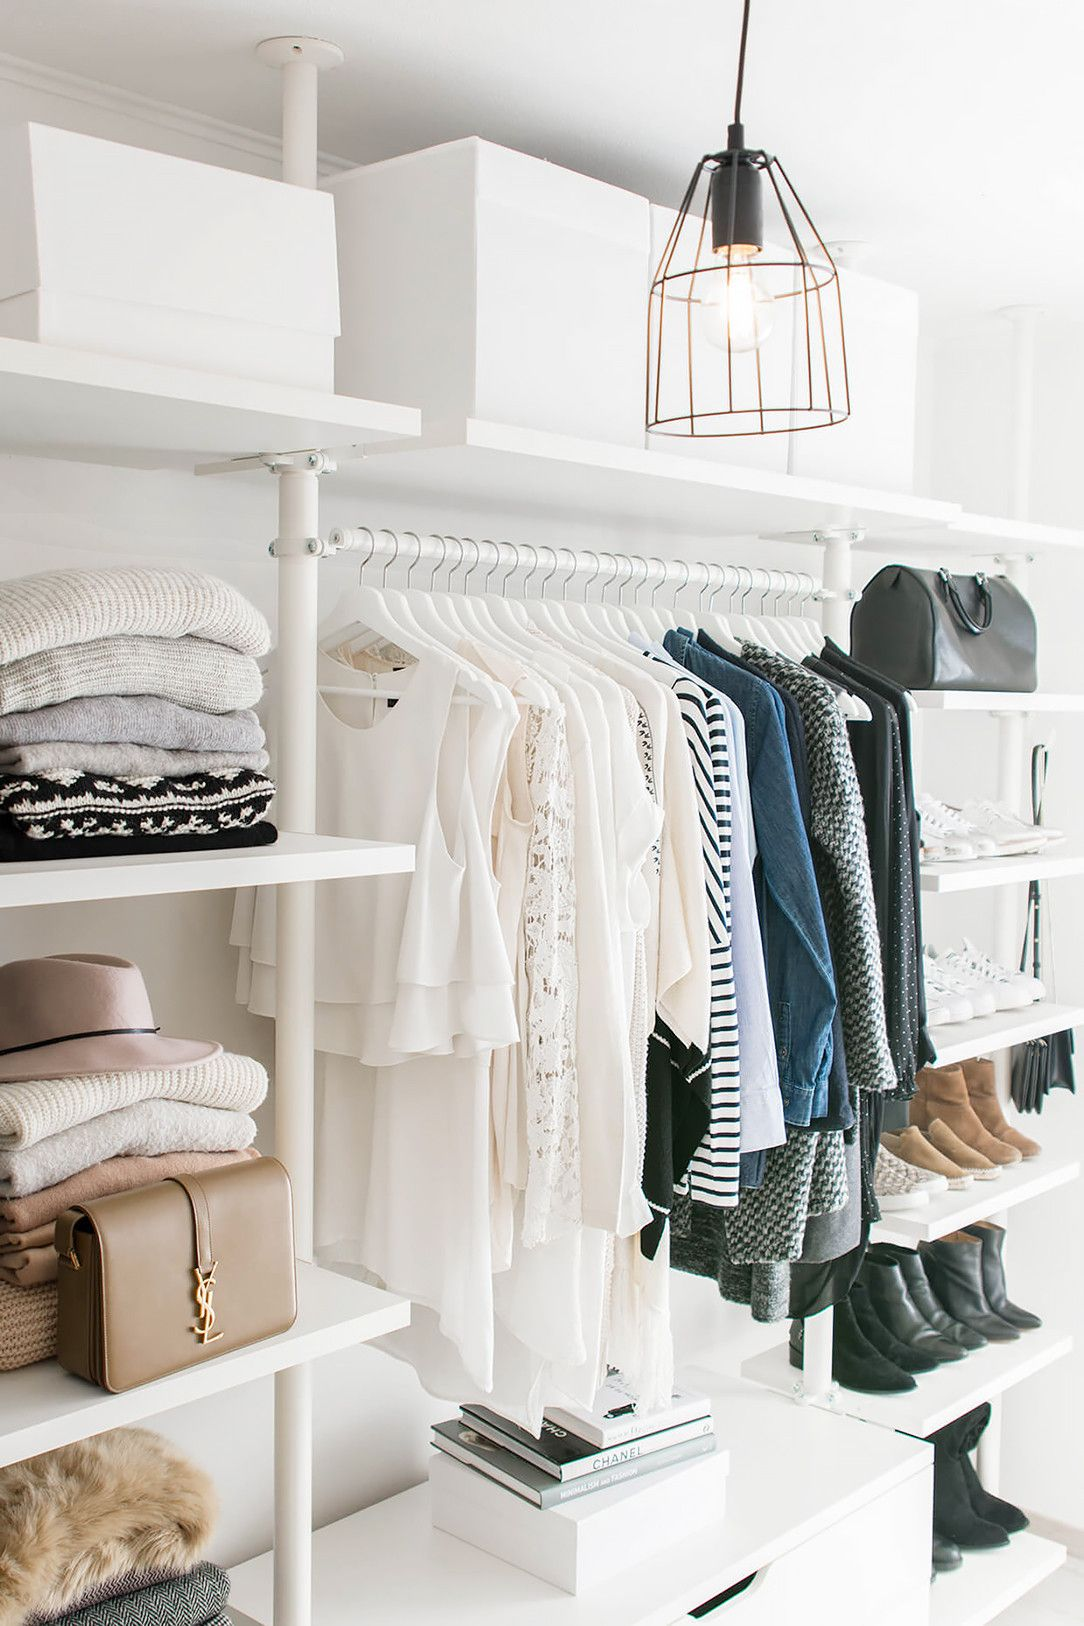 Donu0027t Unpack Your Winter Clothes Without These 6 Closet Organization Hacks via @MyDomaine & 6 Genius Organization Hacks a Celebrity Closet Designer Knows (That ...